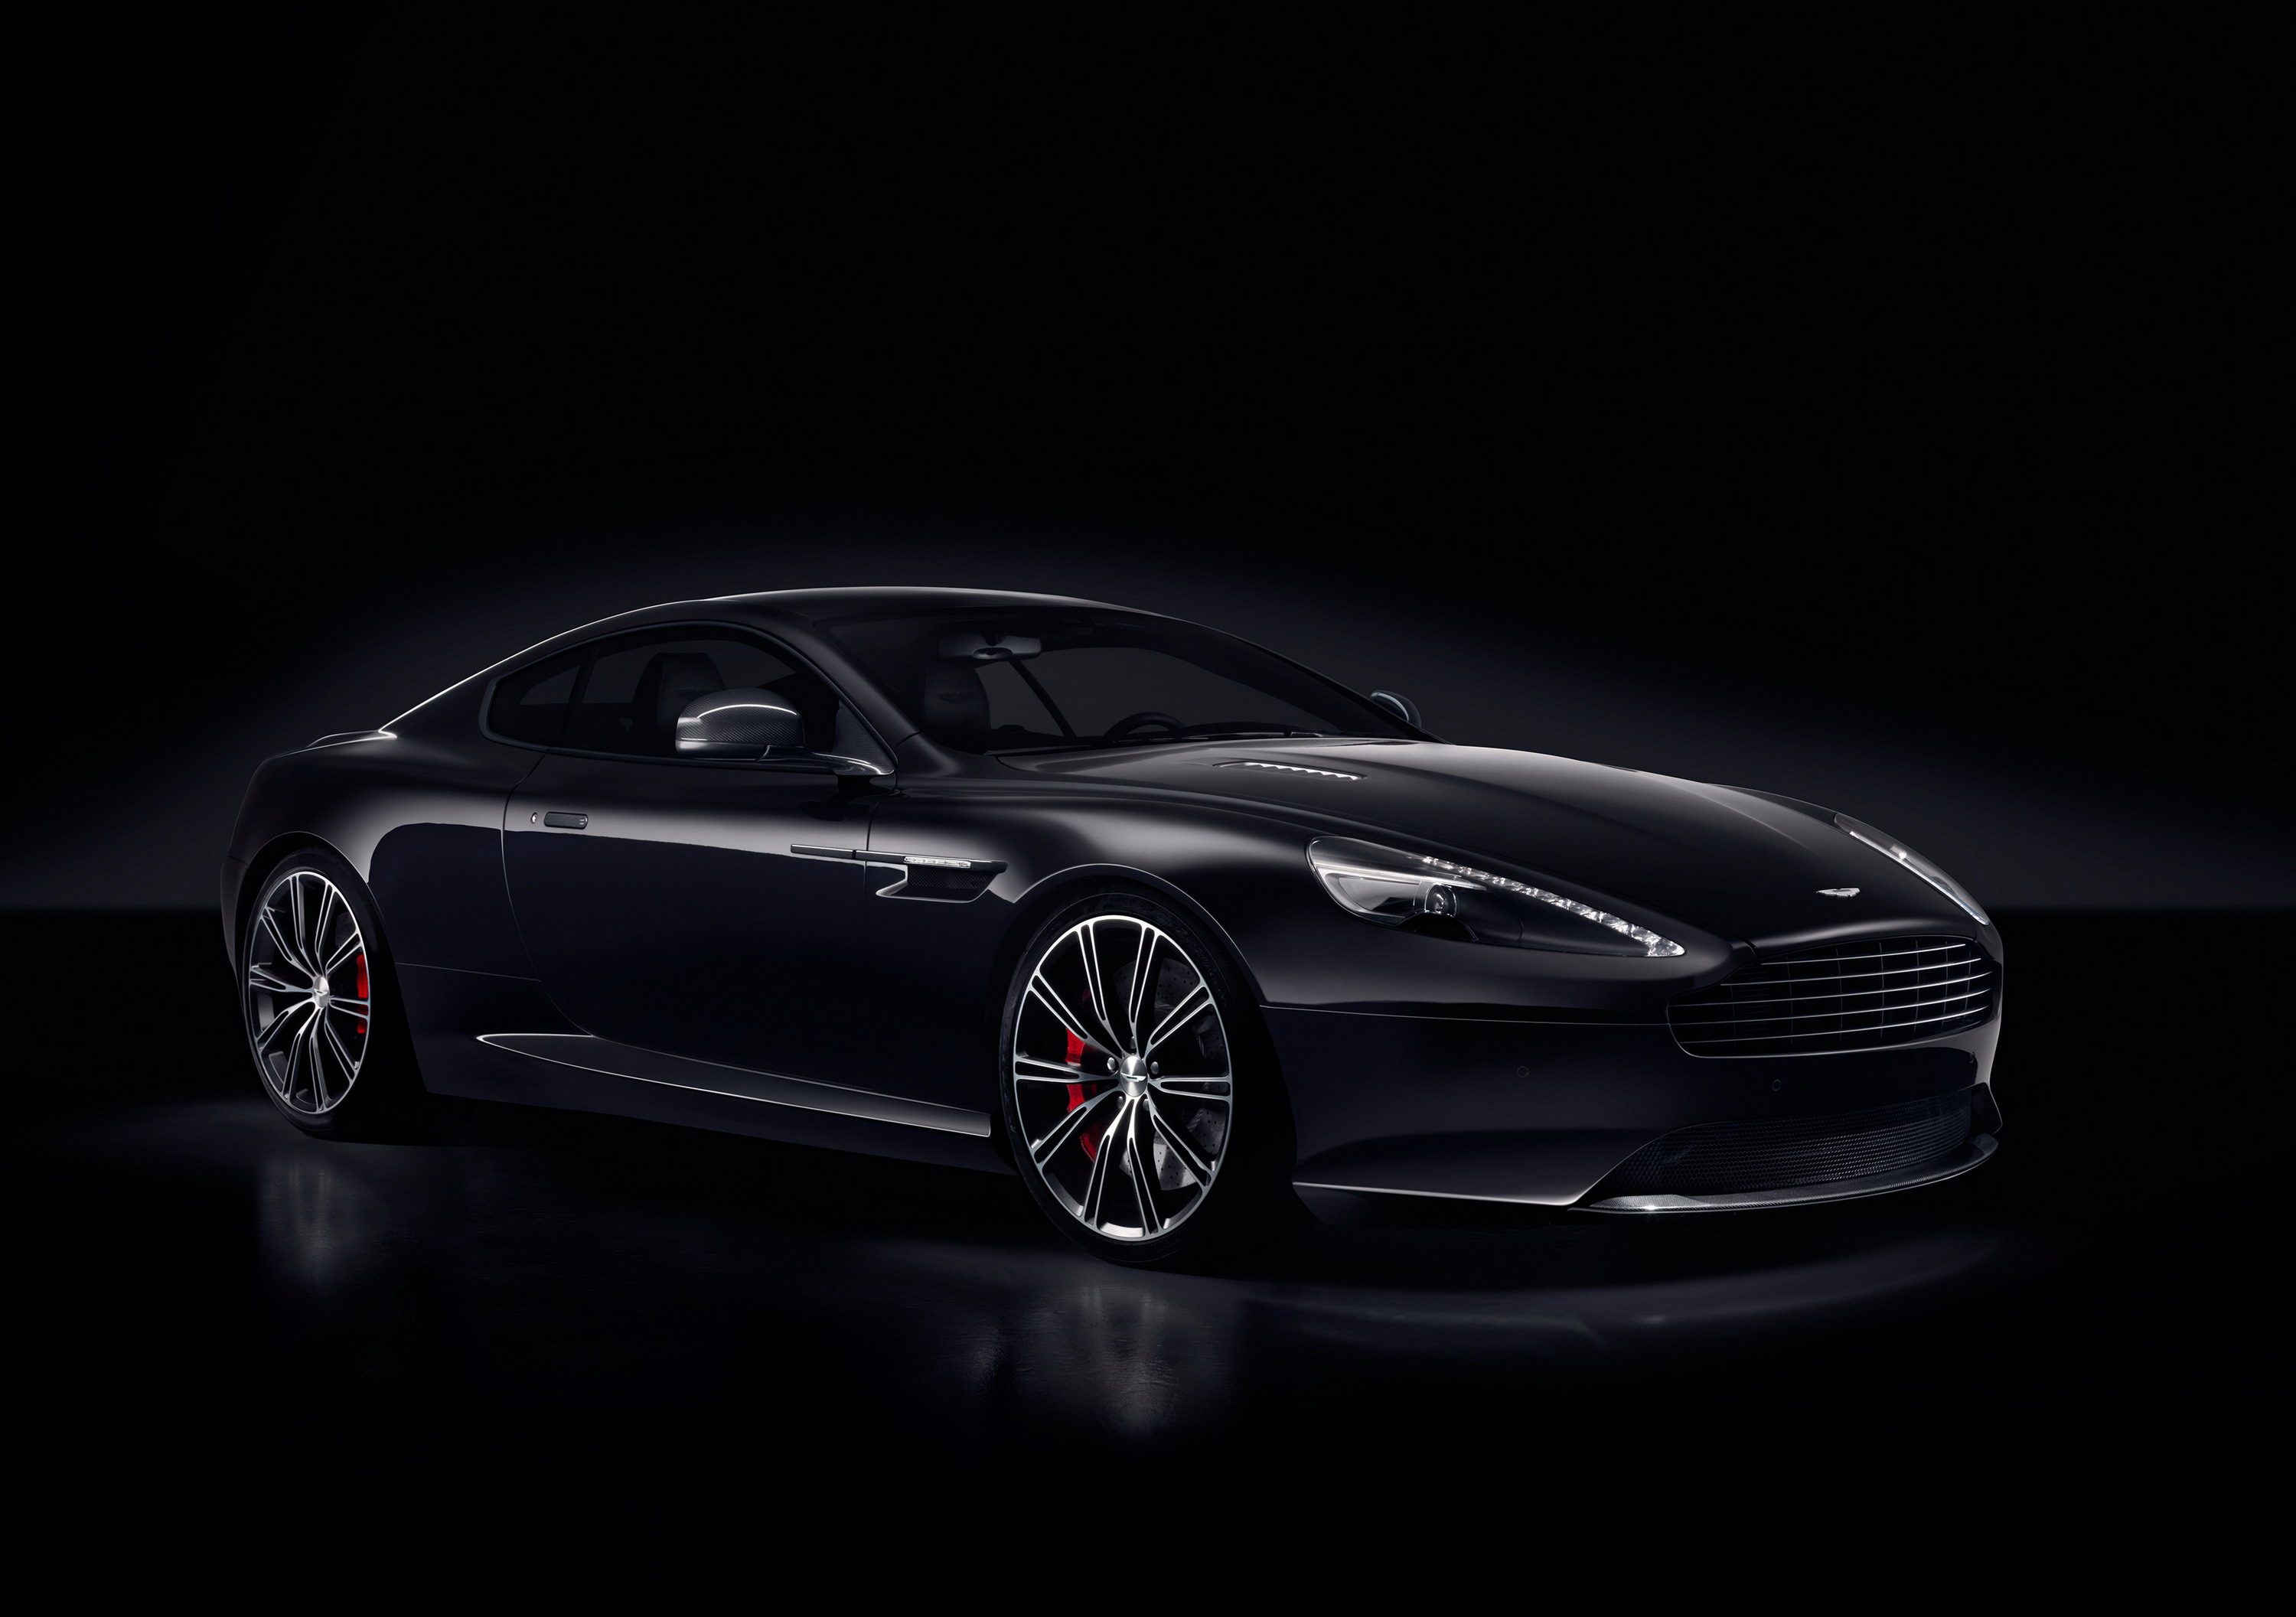 2015 aston martin db9 carbon black & carbon white review - gallery